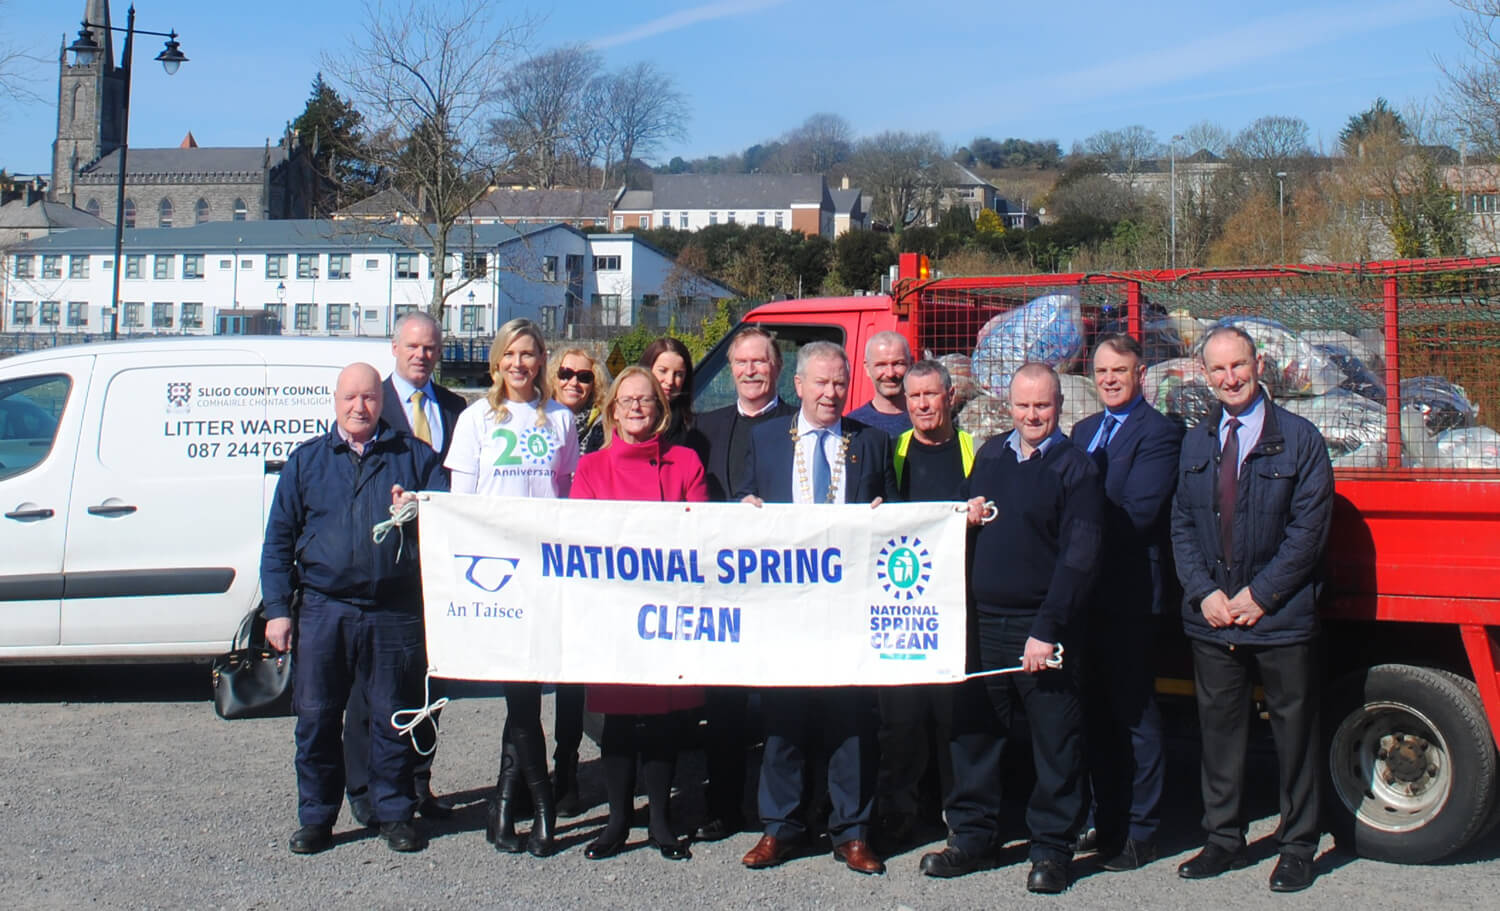 National Spring Clean 2018